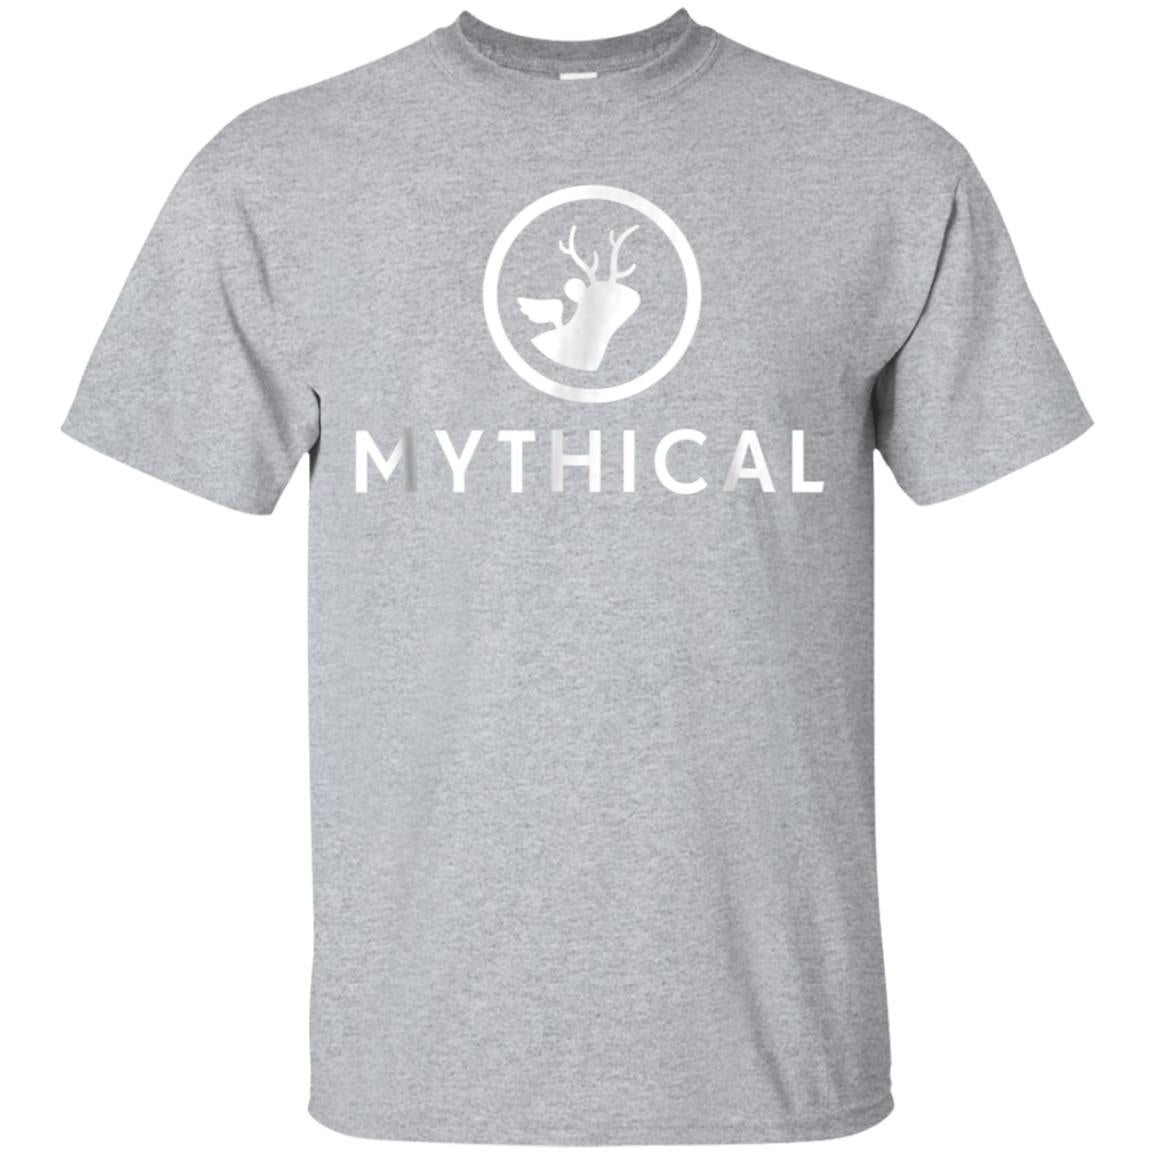 Mythical Official Logo Tee 99promocode